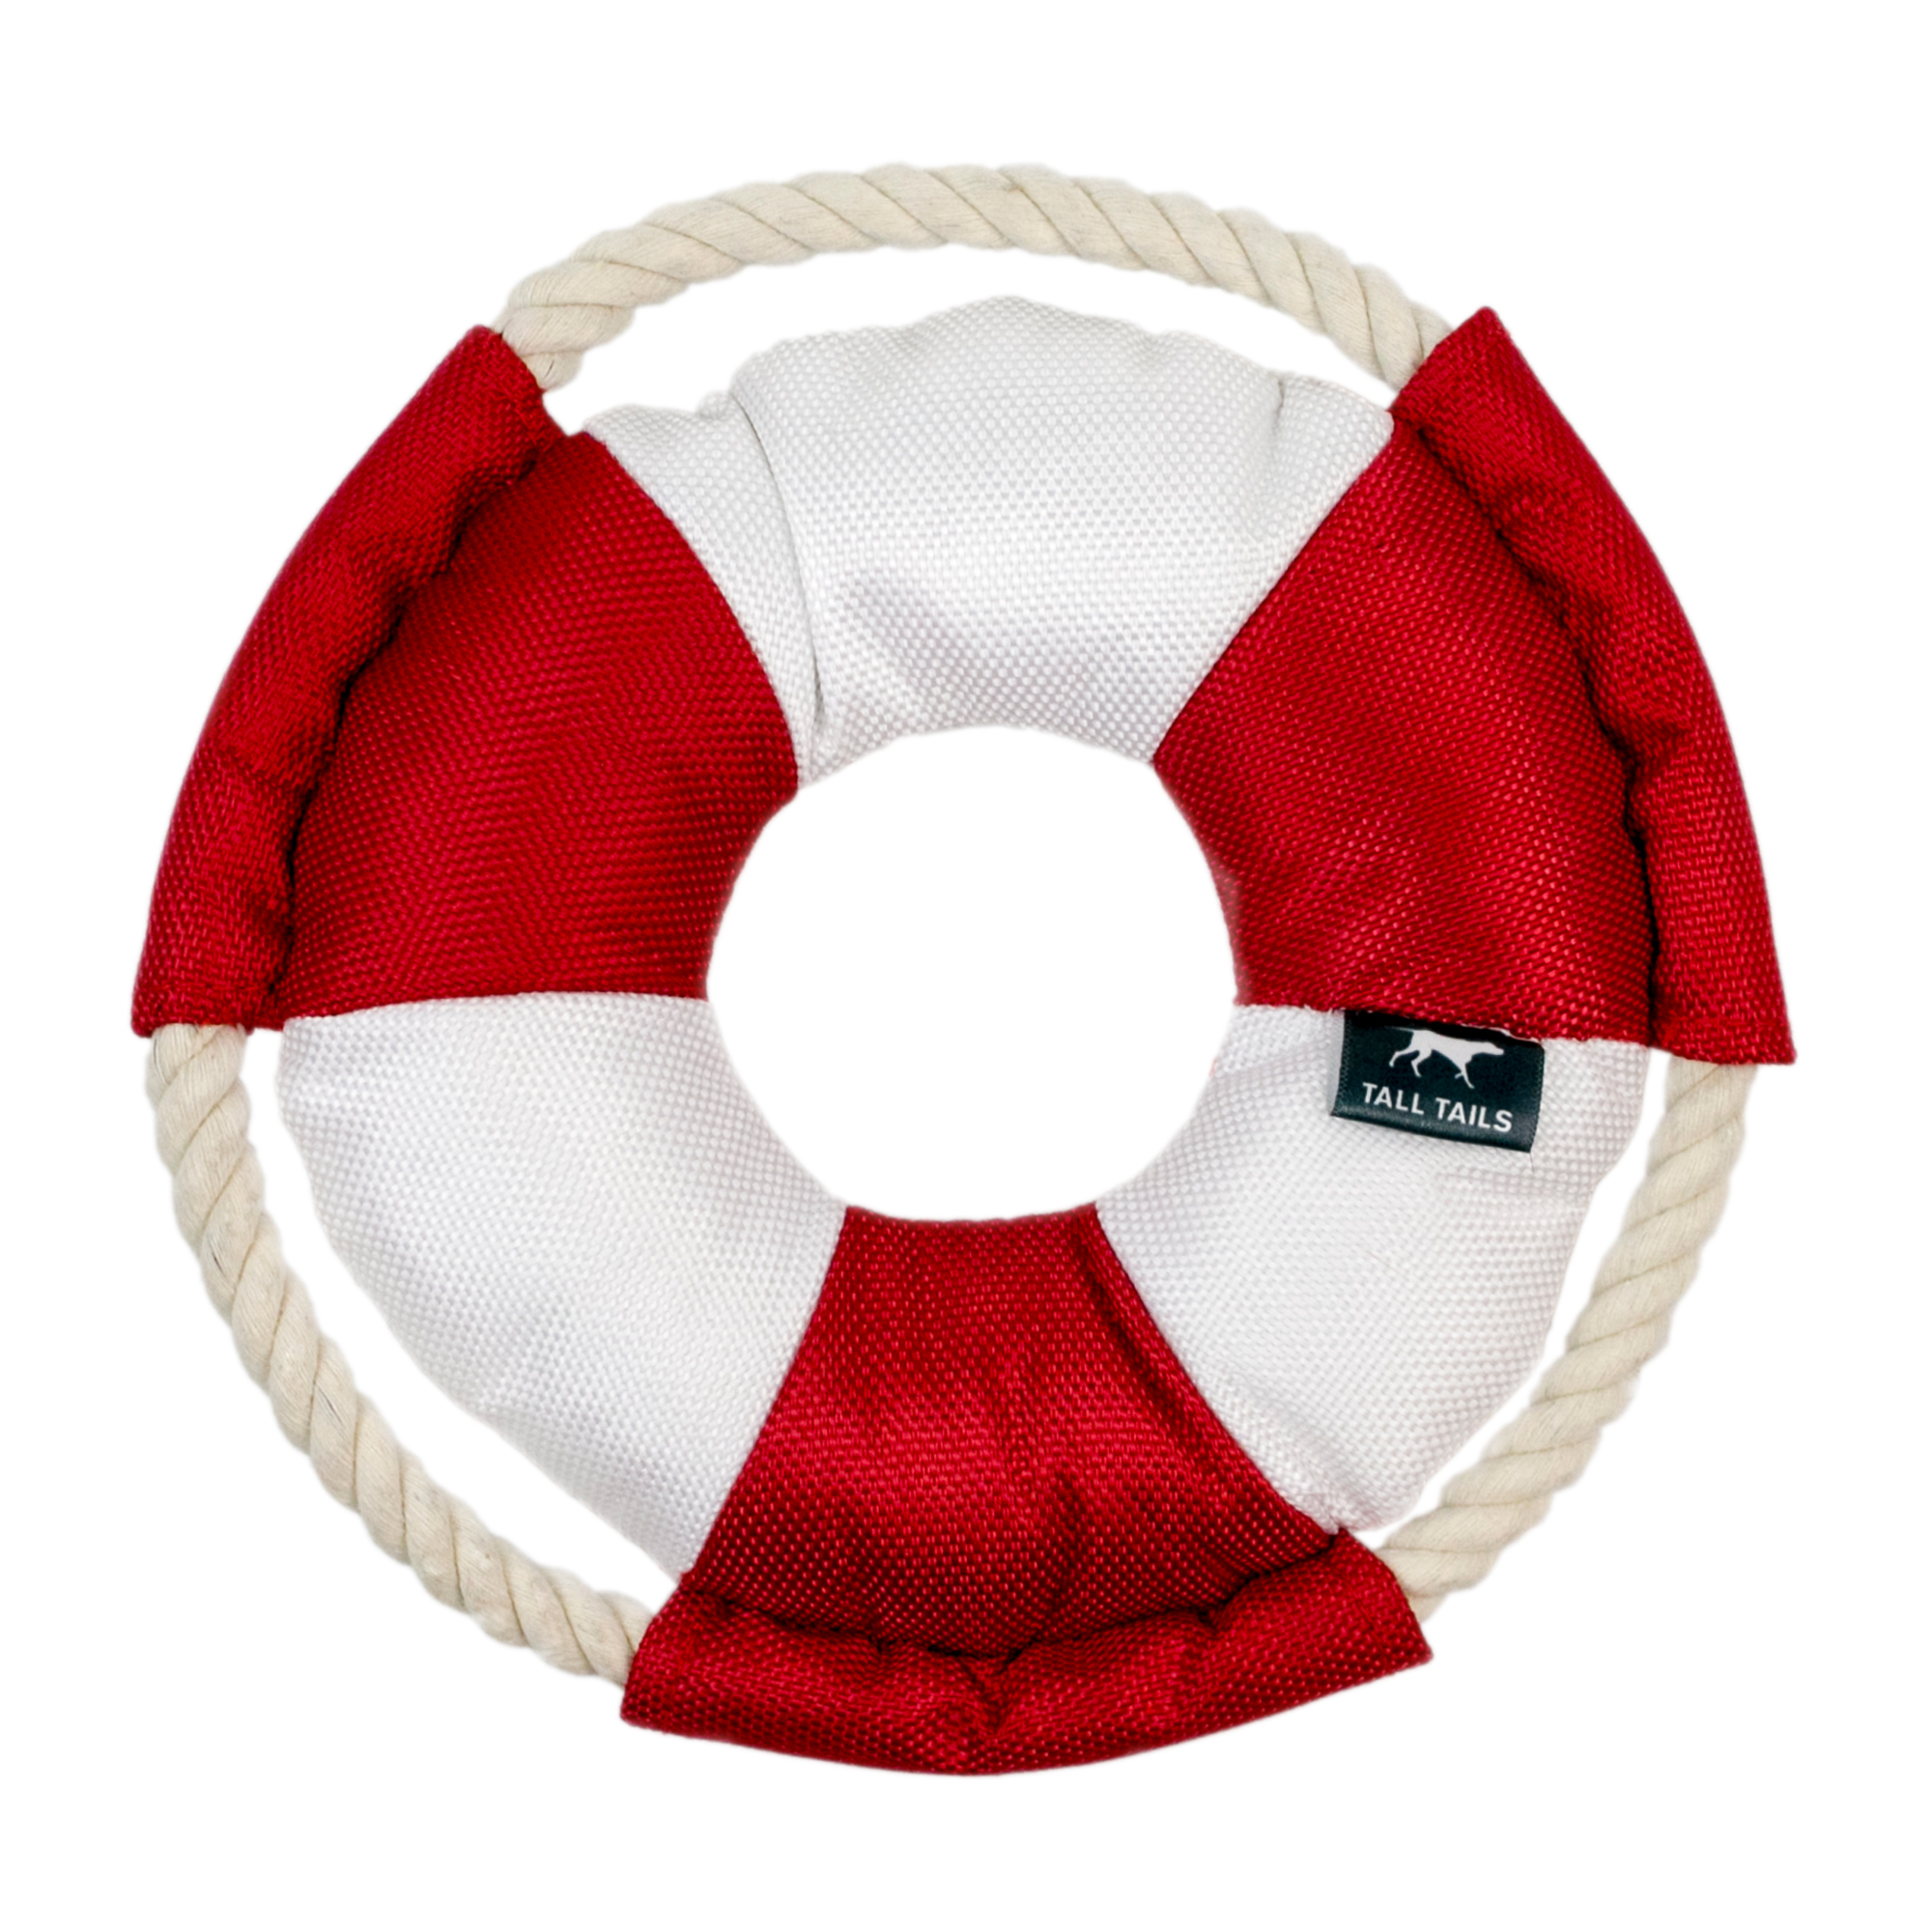 Tall Tails Lifebuoy With Squeaker Dog Toy Image